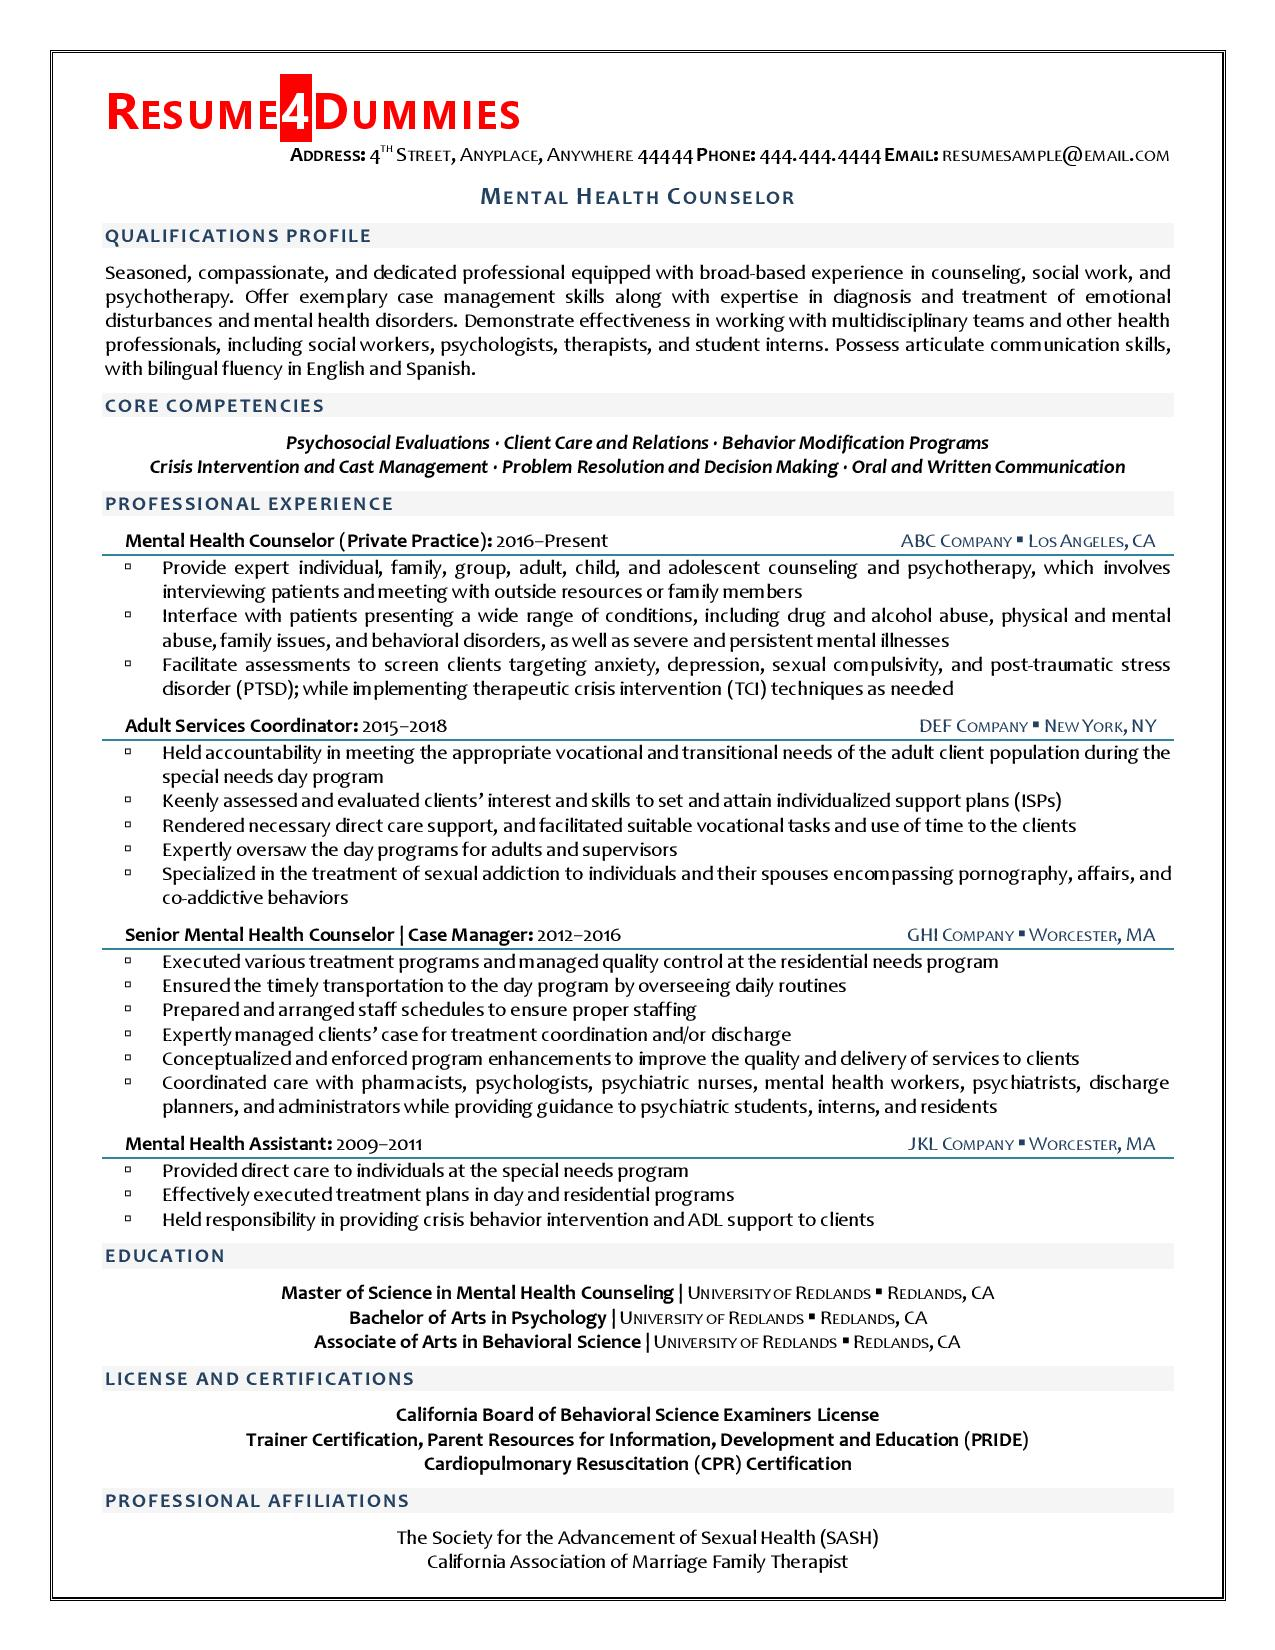 mental health counselor resume example resume4dummies entry level army mechanic examples Resume Entry Level Mental Health Counselor Resume